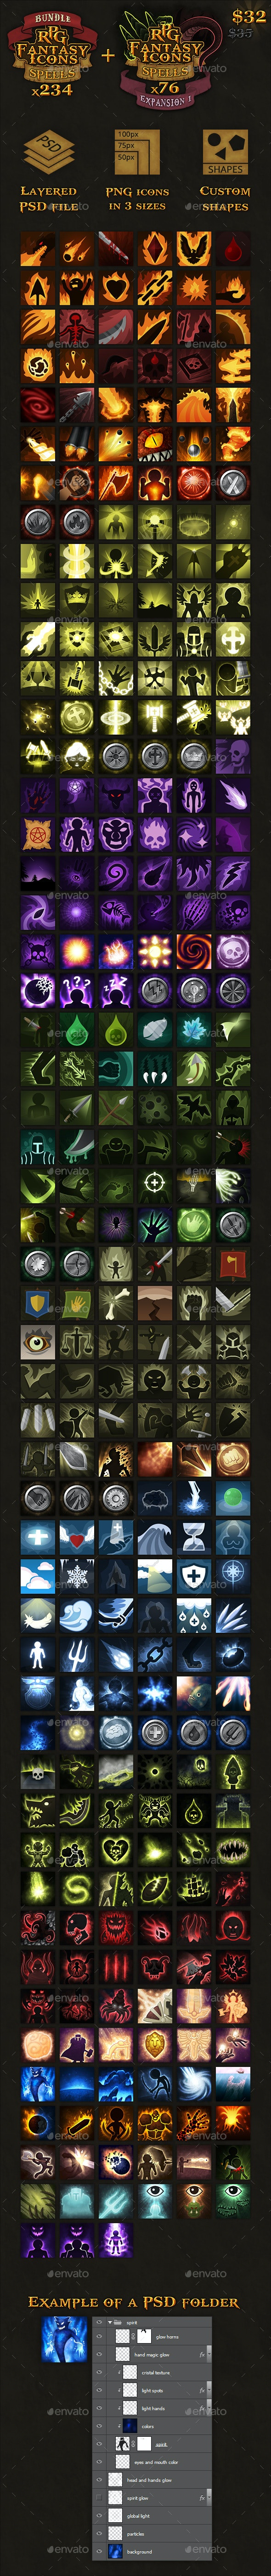 310 RPG Fantasy Spells Icons Bundle - Miscellaneous Game Assets